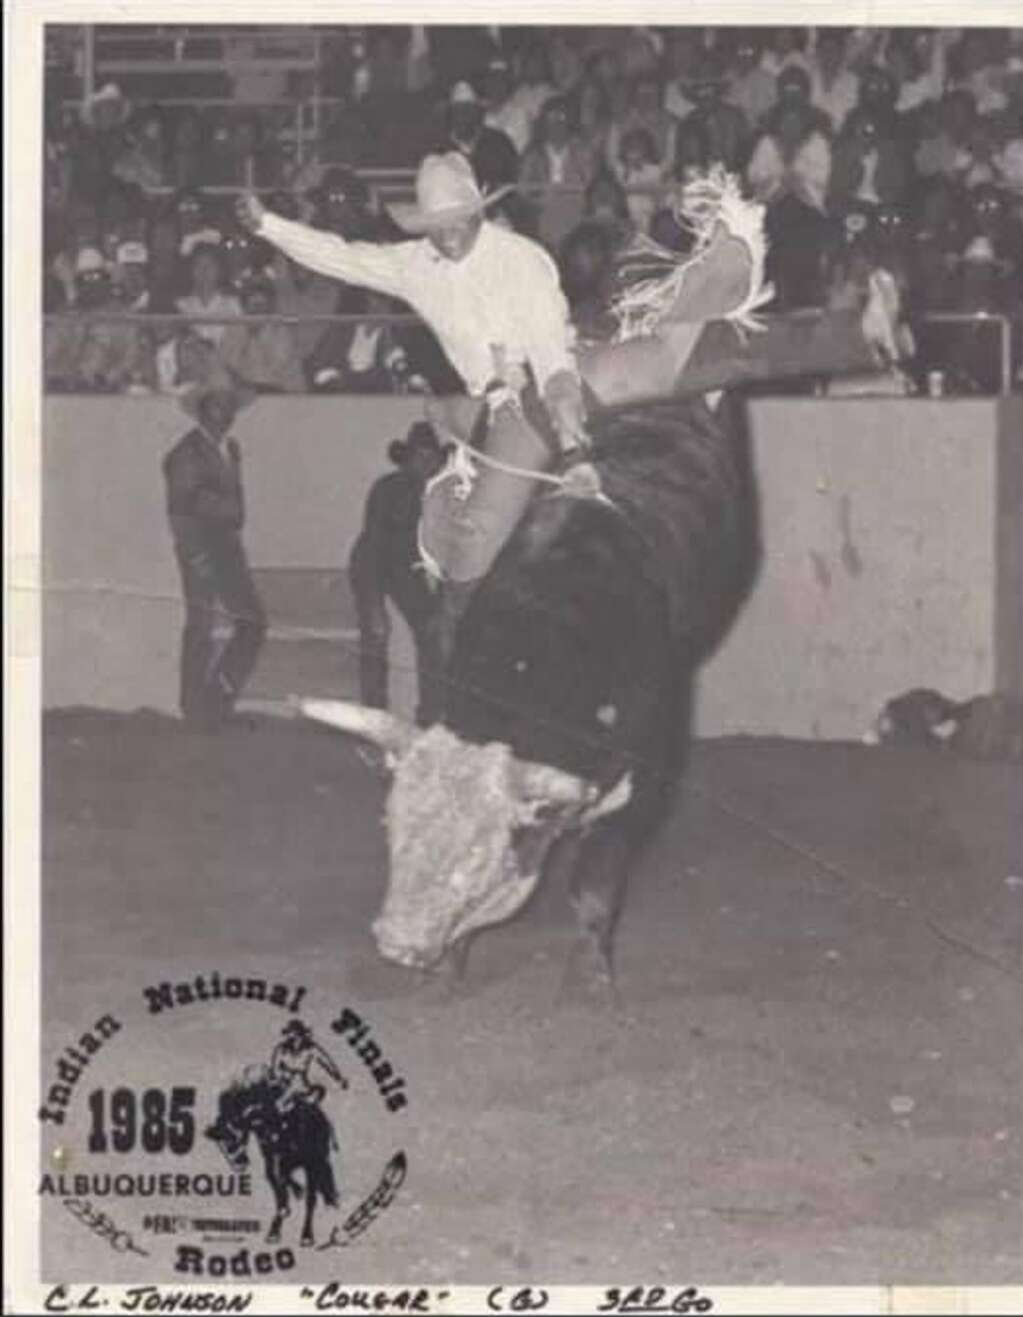 CL Johnson won the INFR bull riding title in 1985. Photo courtesy Josey Johnson